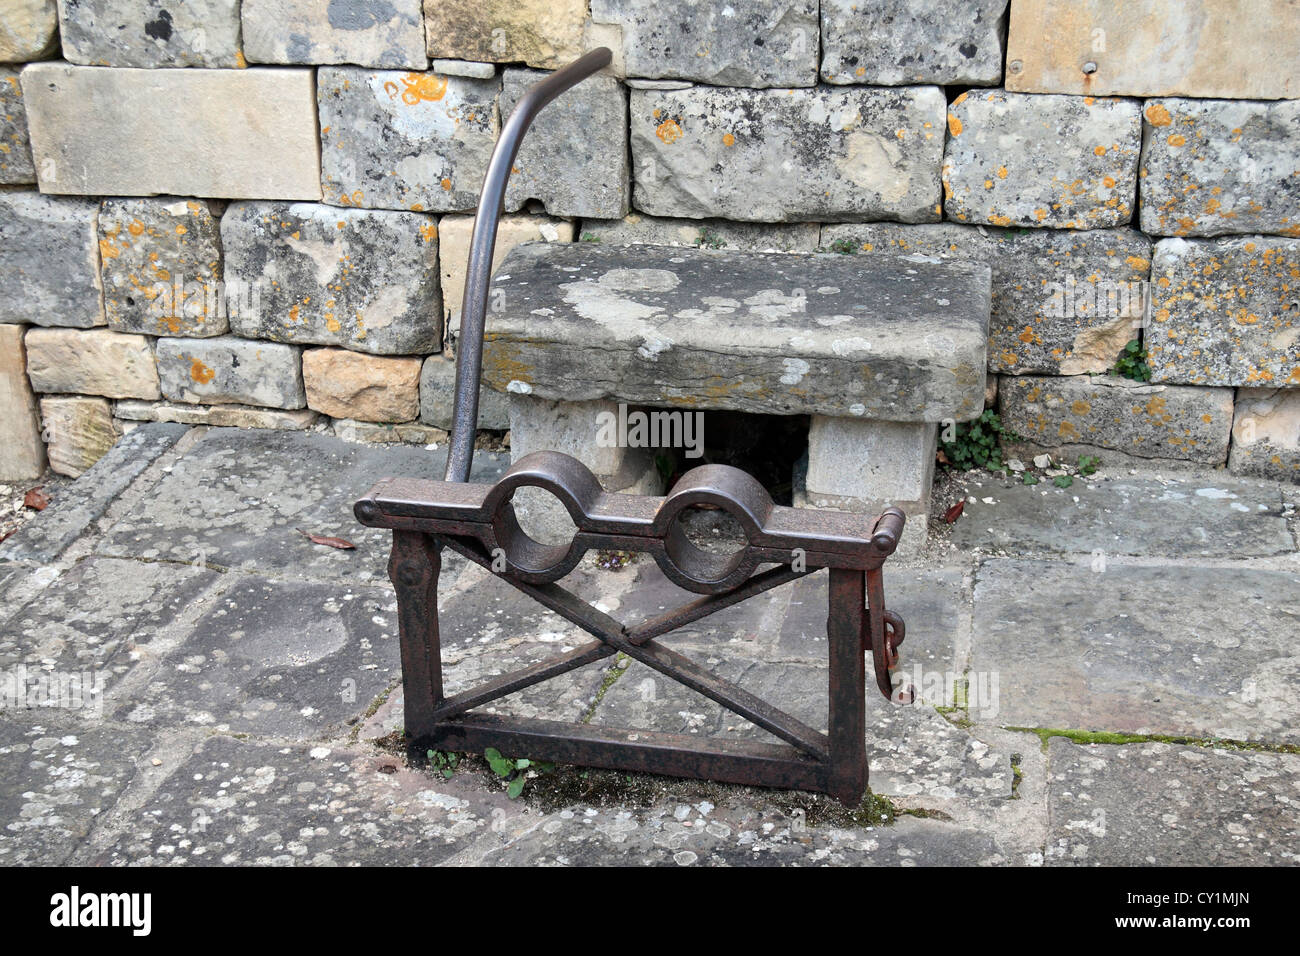 A set of iron spectacle stocks in Painswick, Gloucestershire, UK. - Stock Image